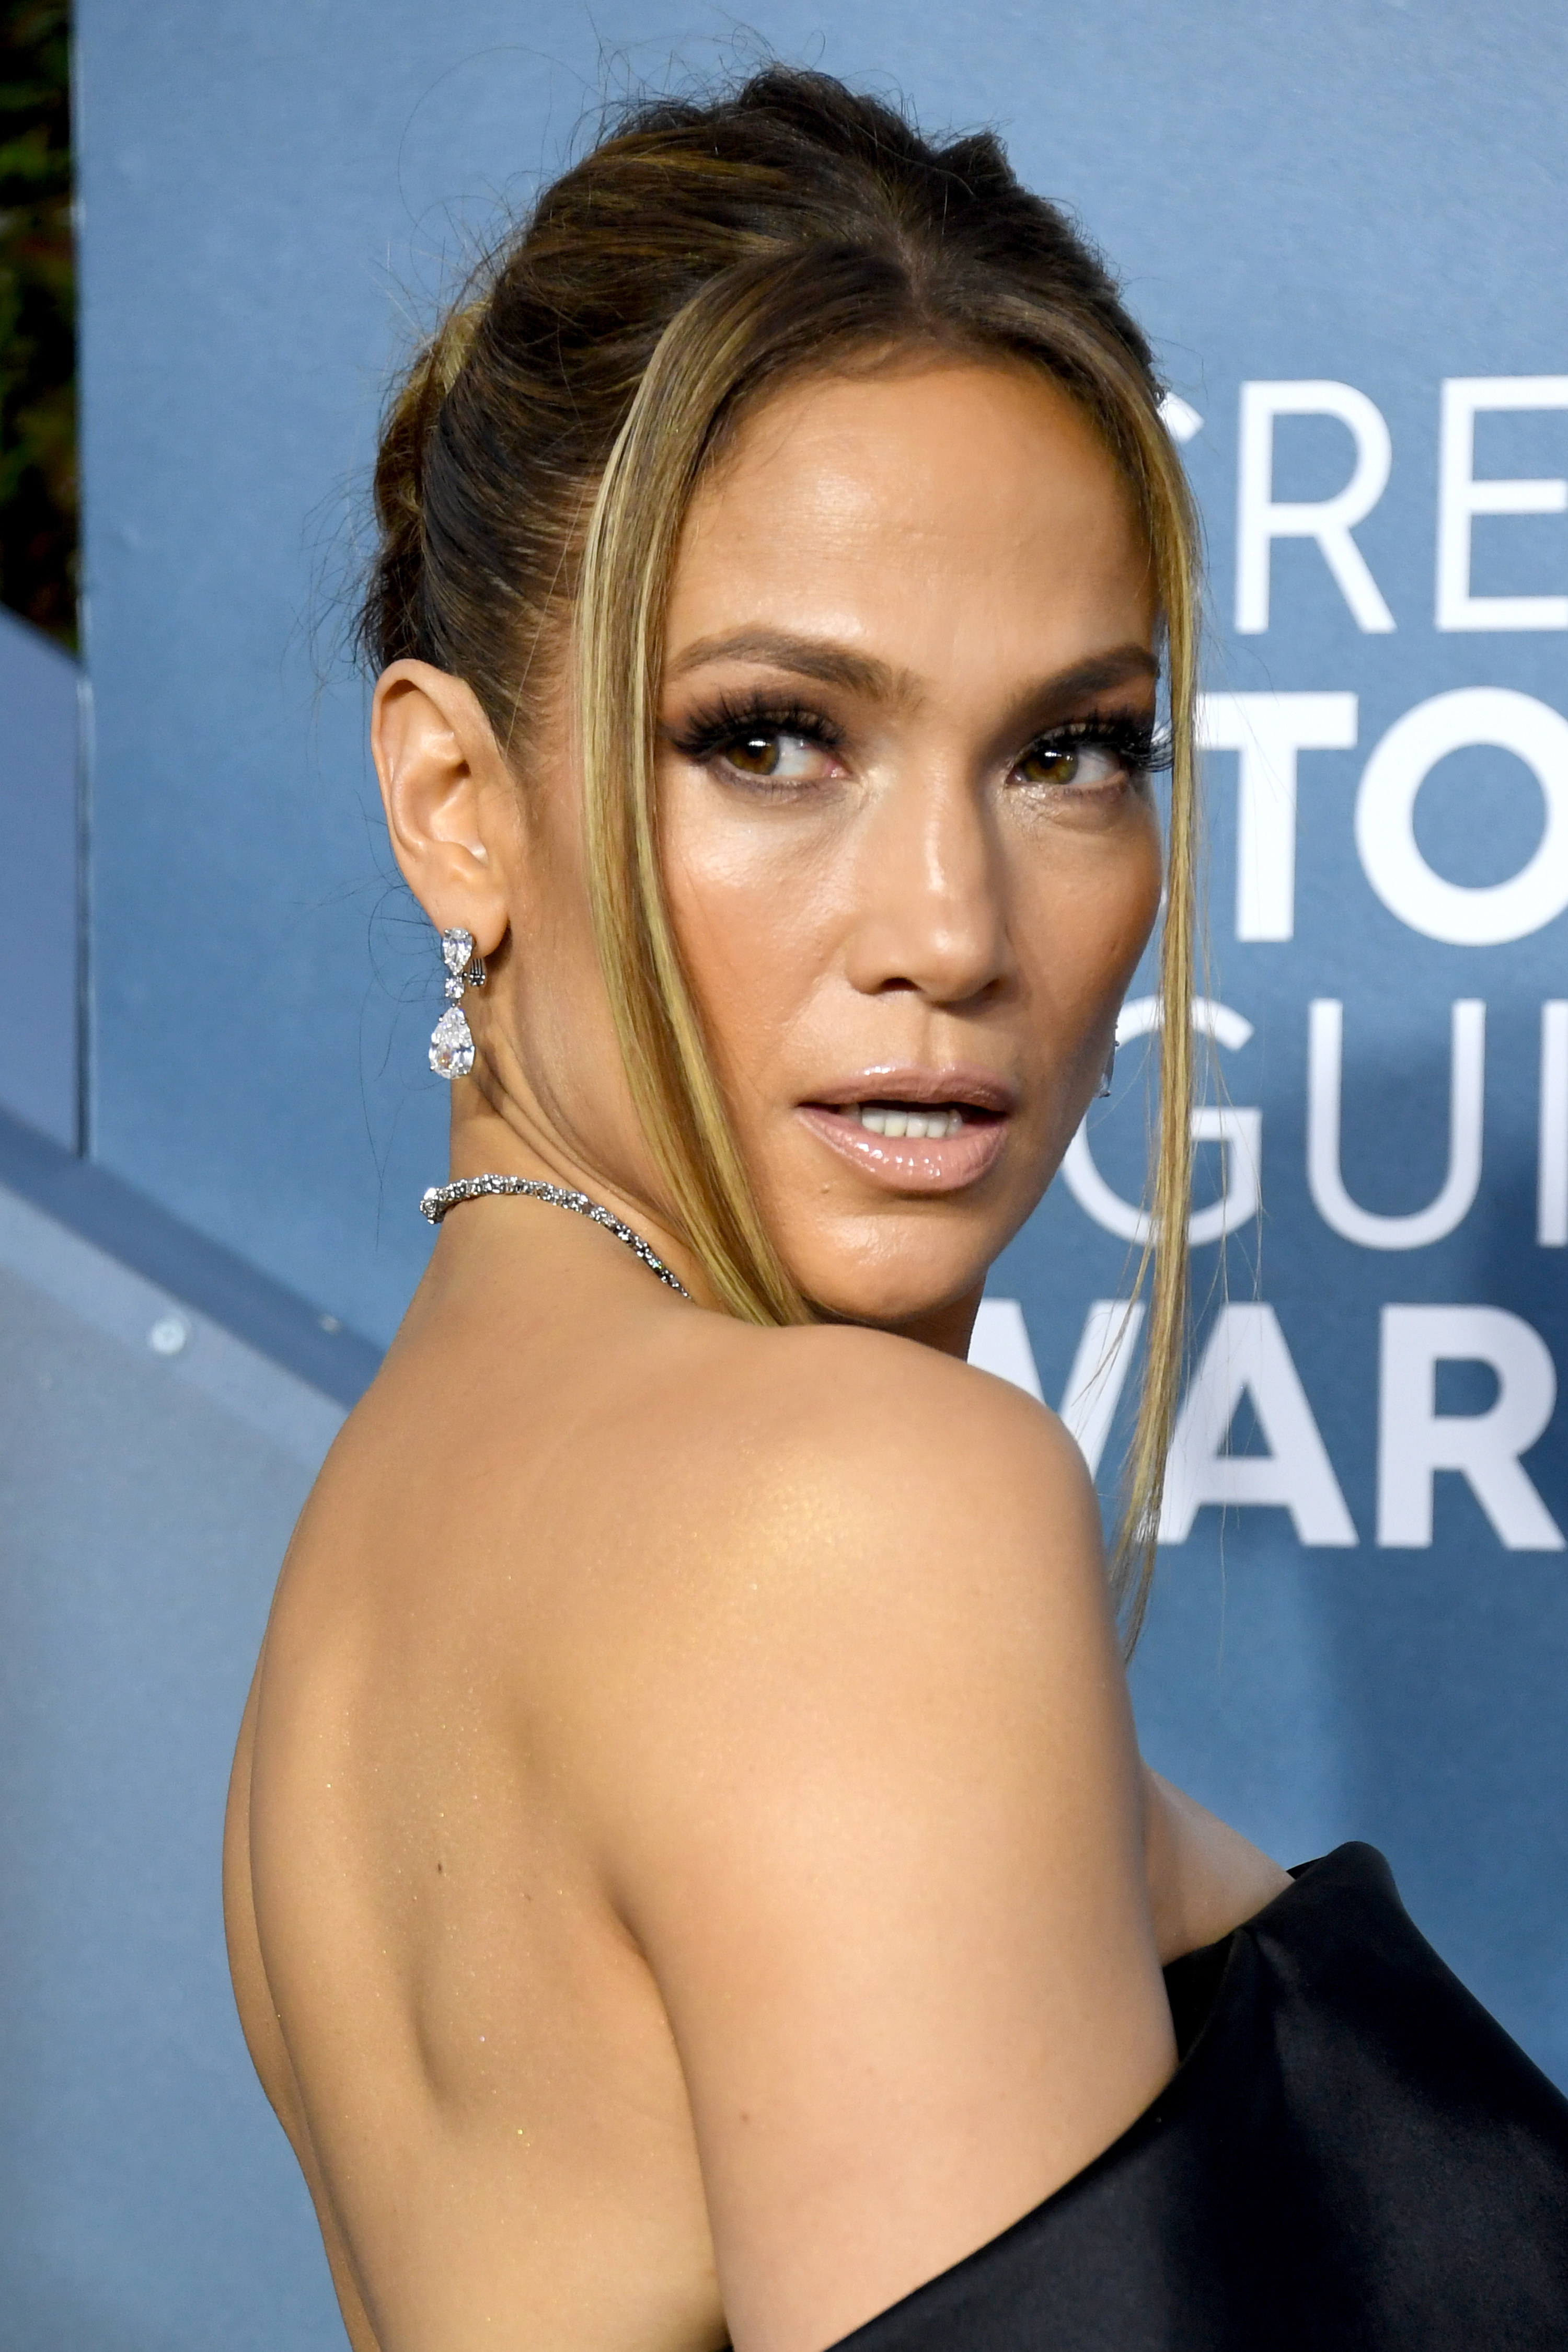 Jennifer Lopez attends the 26th Annual Screen Actors Guild Awards at The Shrine Auditorium on January 19, 2020 in Los Angeles, California.